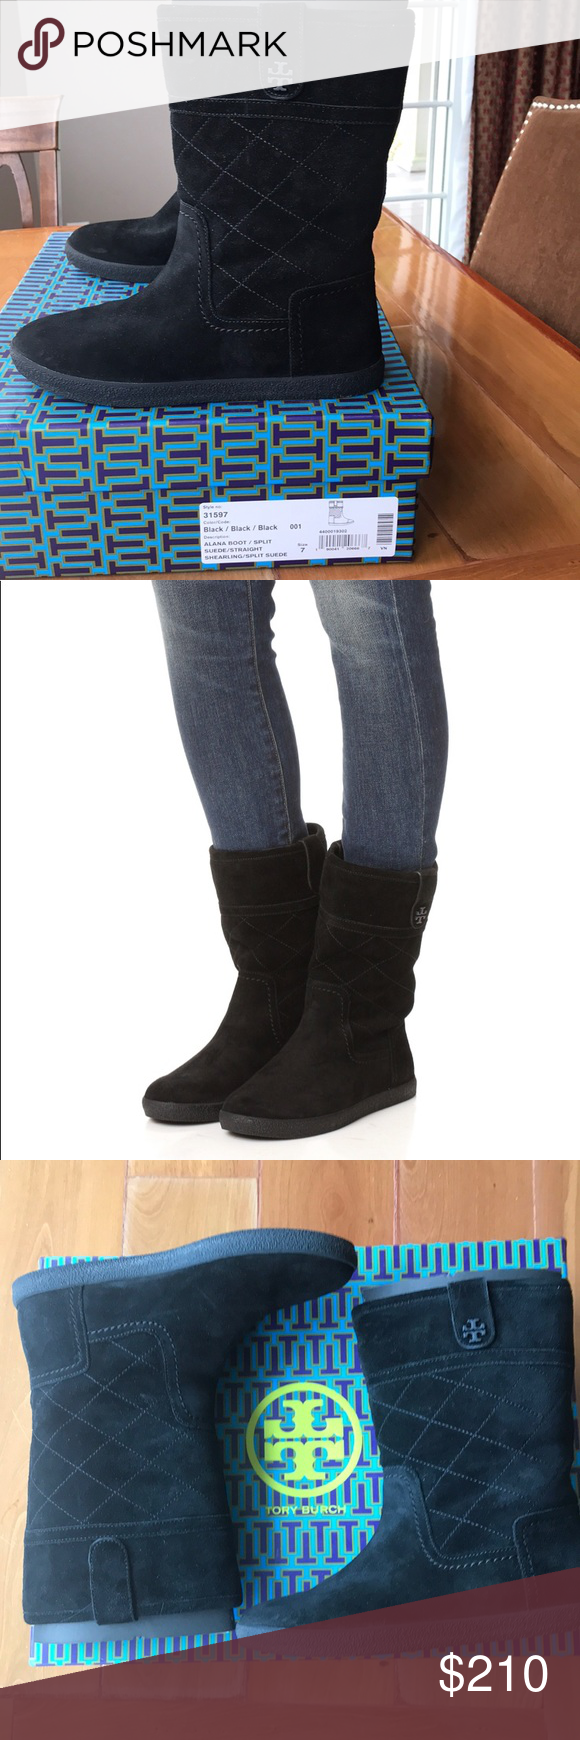 a9604feef56 Tory Burch LIKE NEW Alana suede boot Shearling lining adds warmth to these  quilted suede Tory